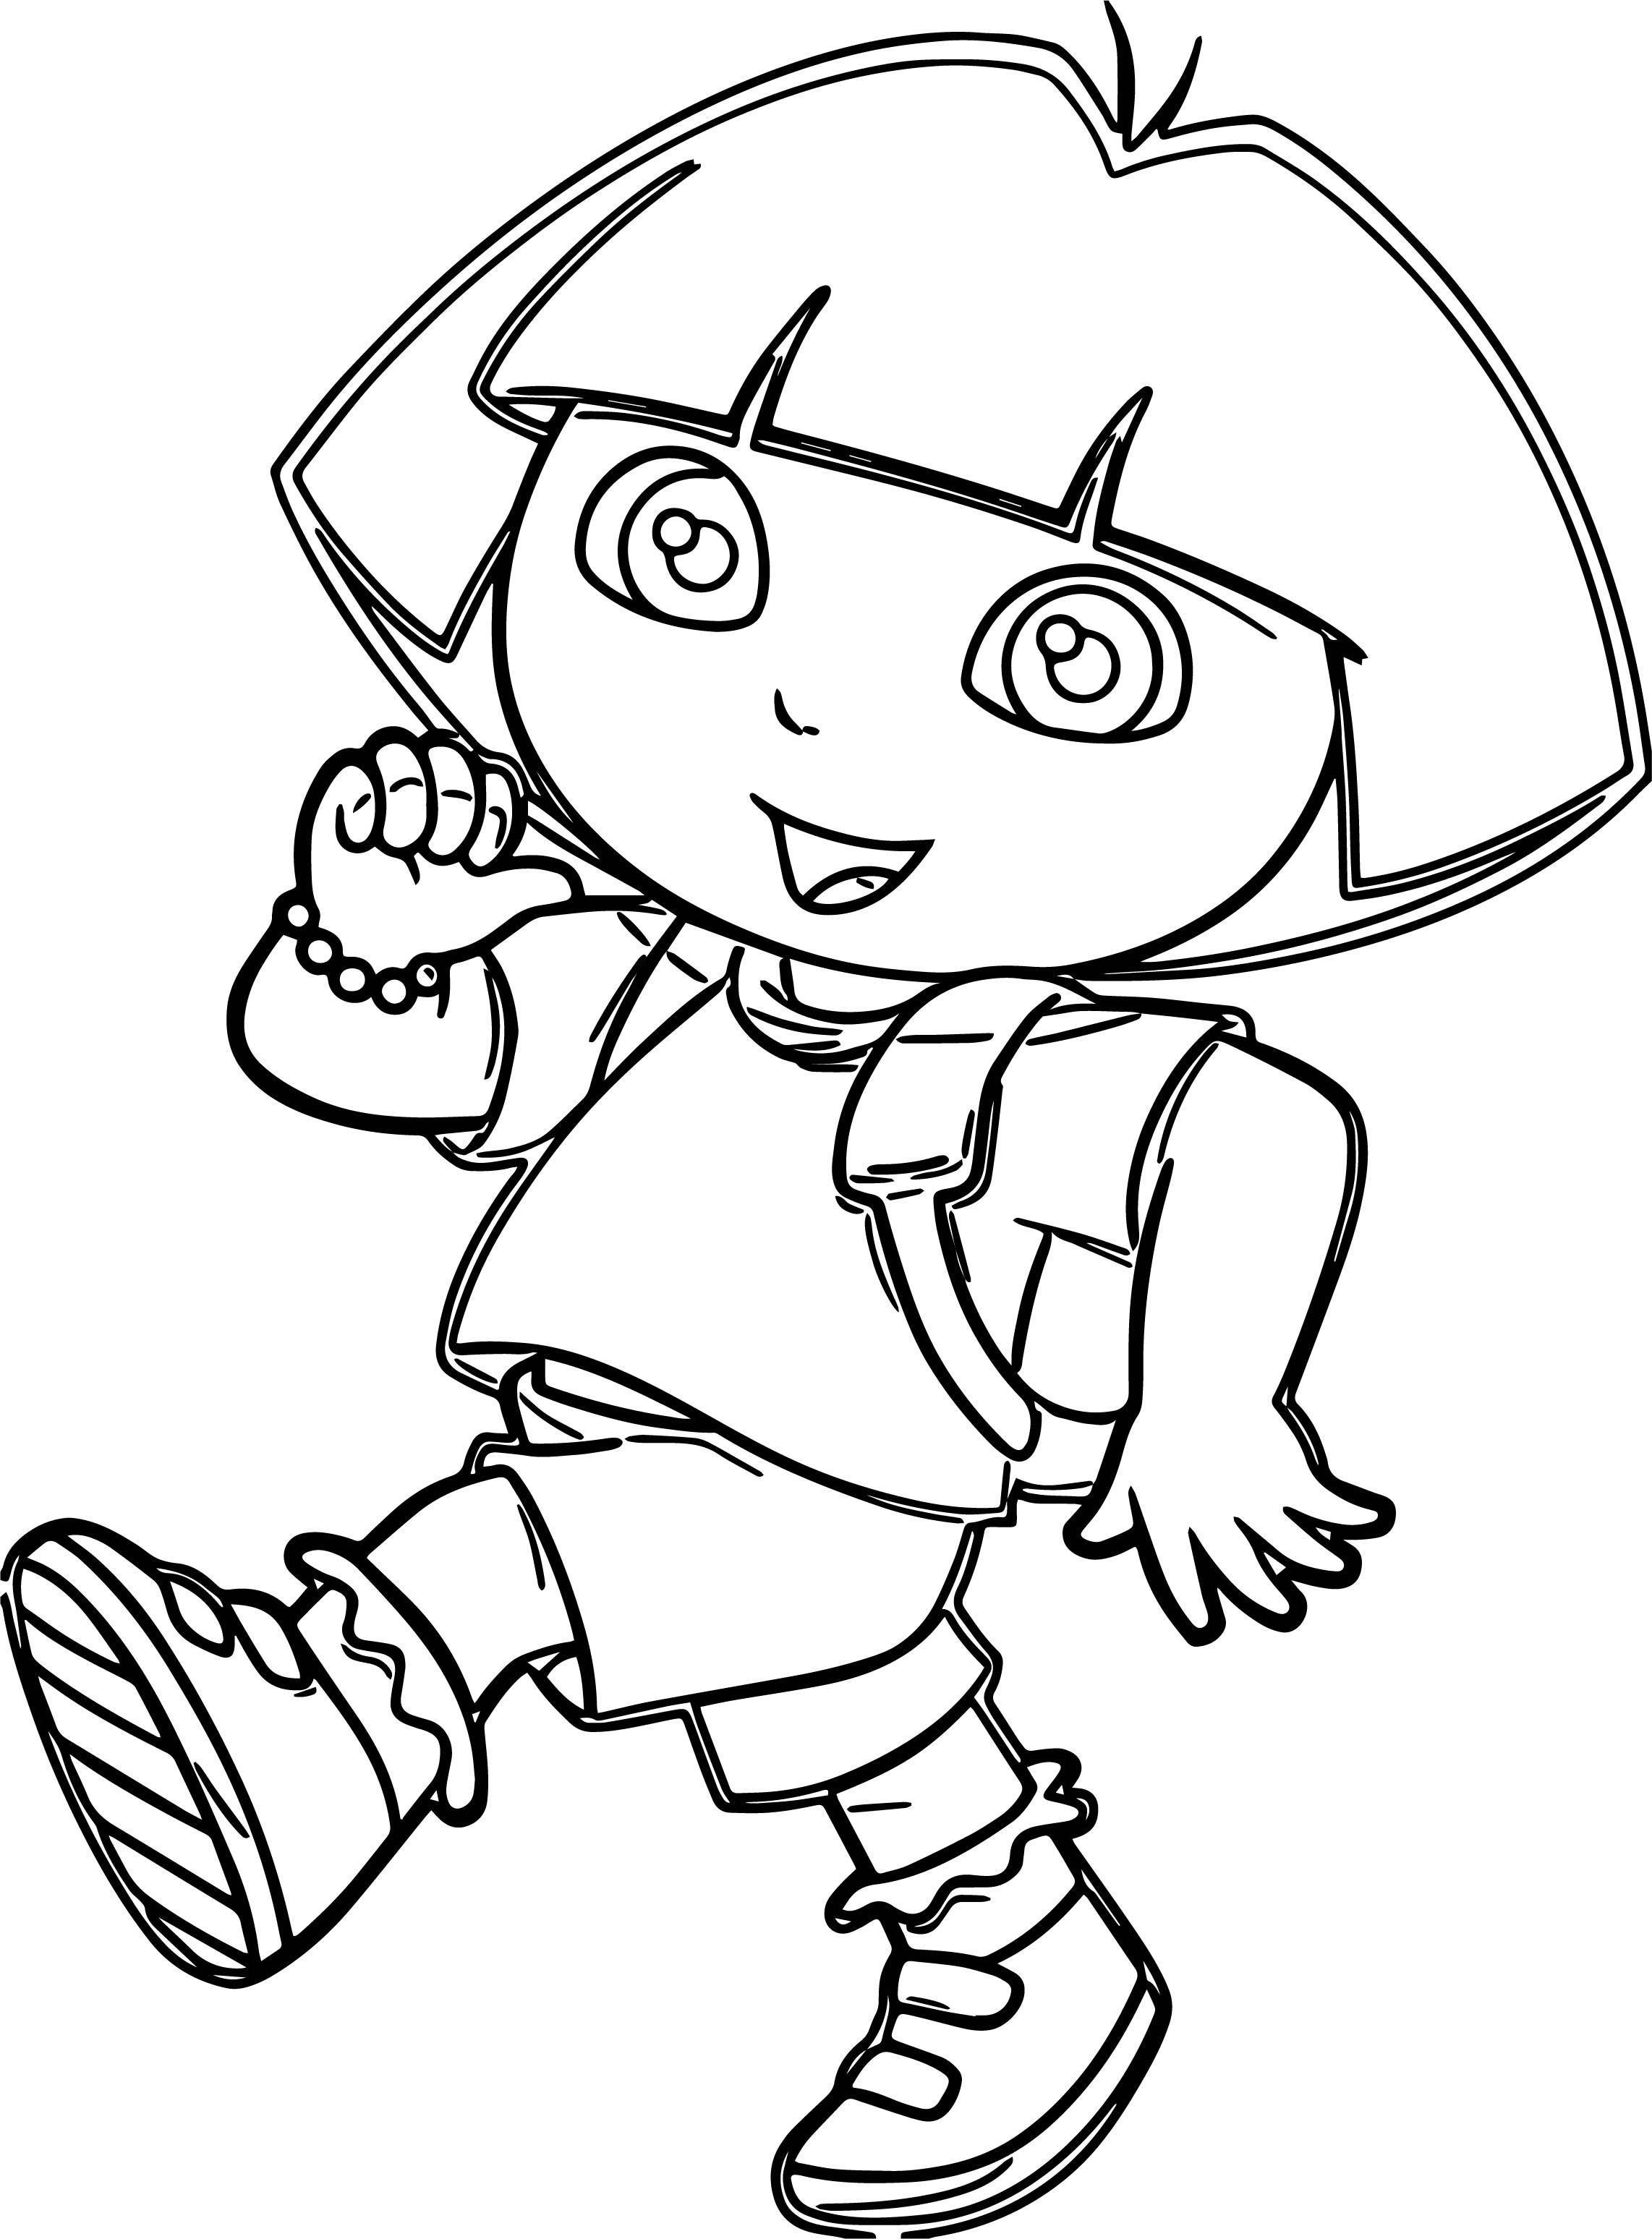 Nice Dora Marquez Walking Cartoon Coloring Page